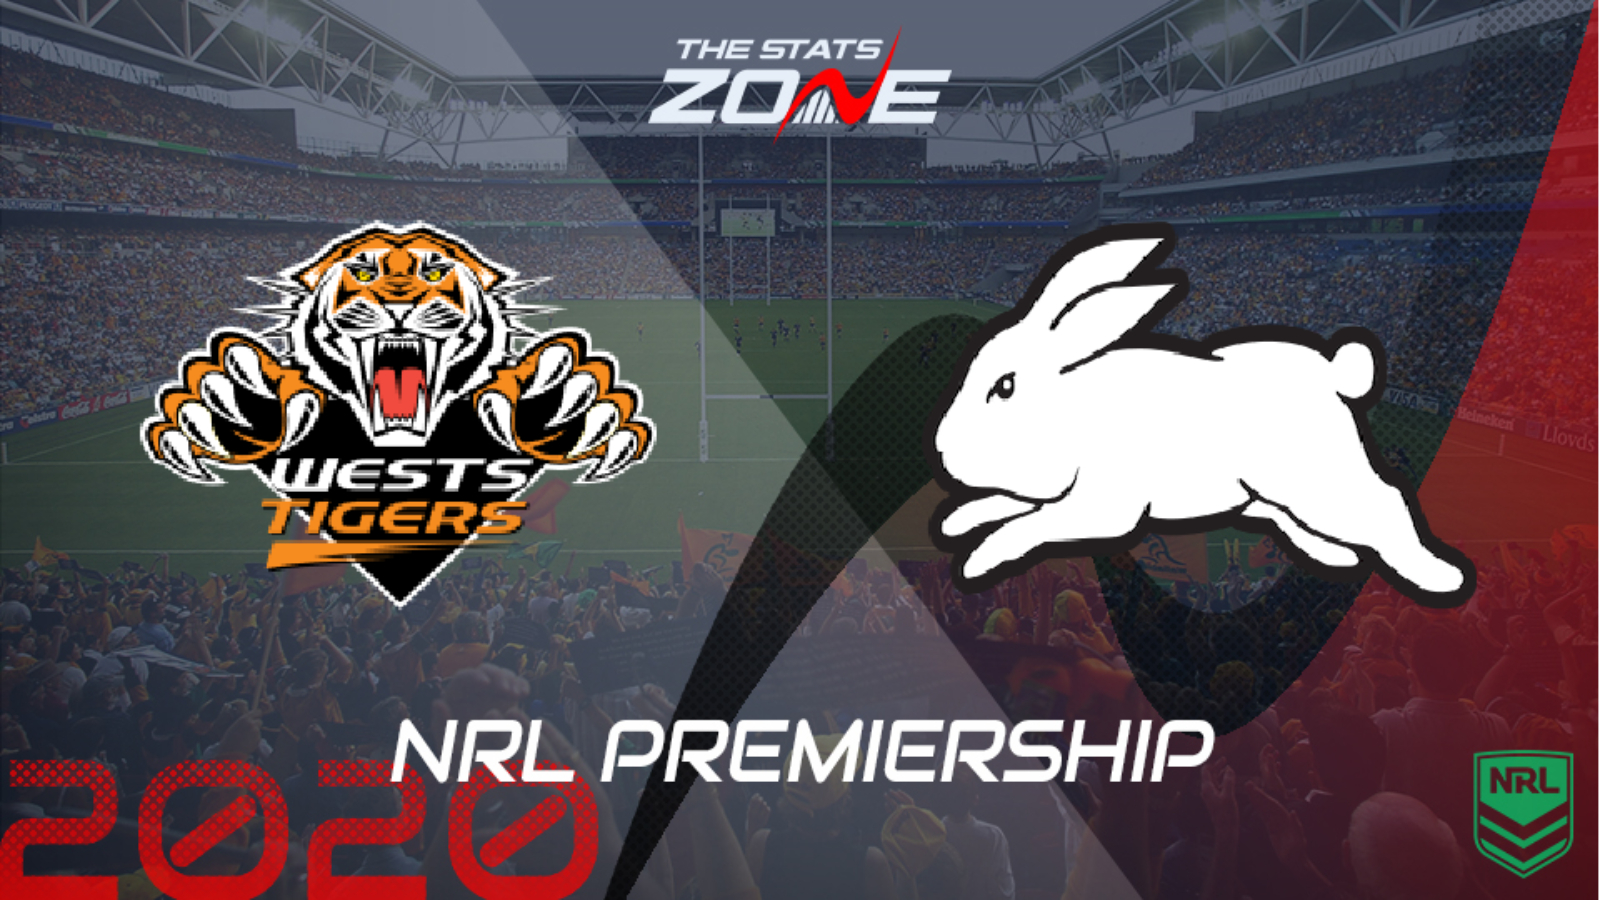 2020 Nrl Wests Tigers Vs South Sydney Rabbitohs Preview Prediction The Stats Zone